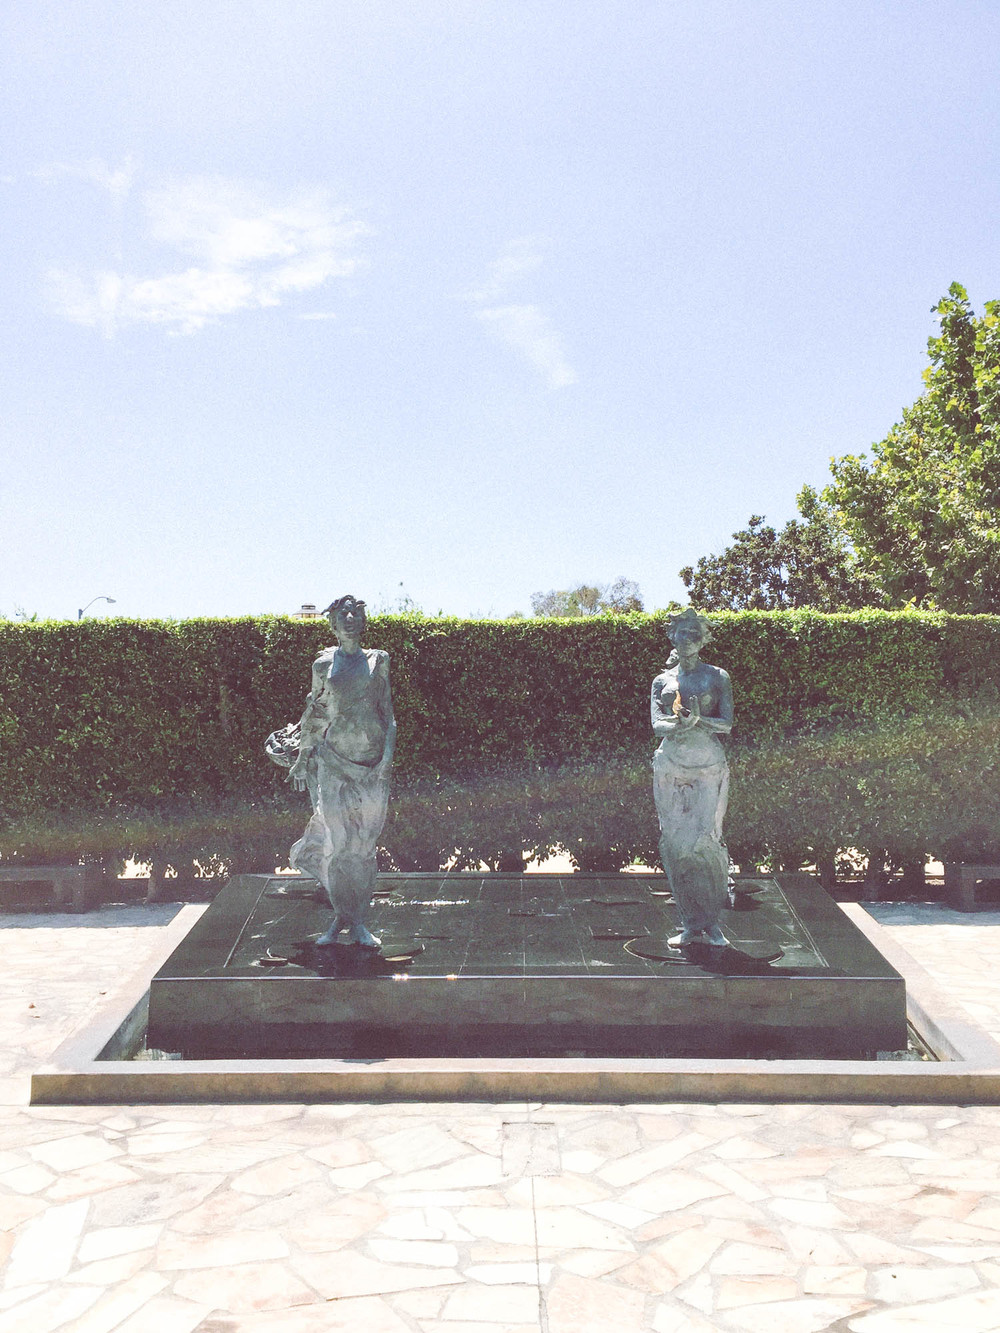 cerritos sculpture garden1.jpg